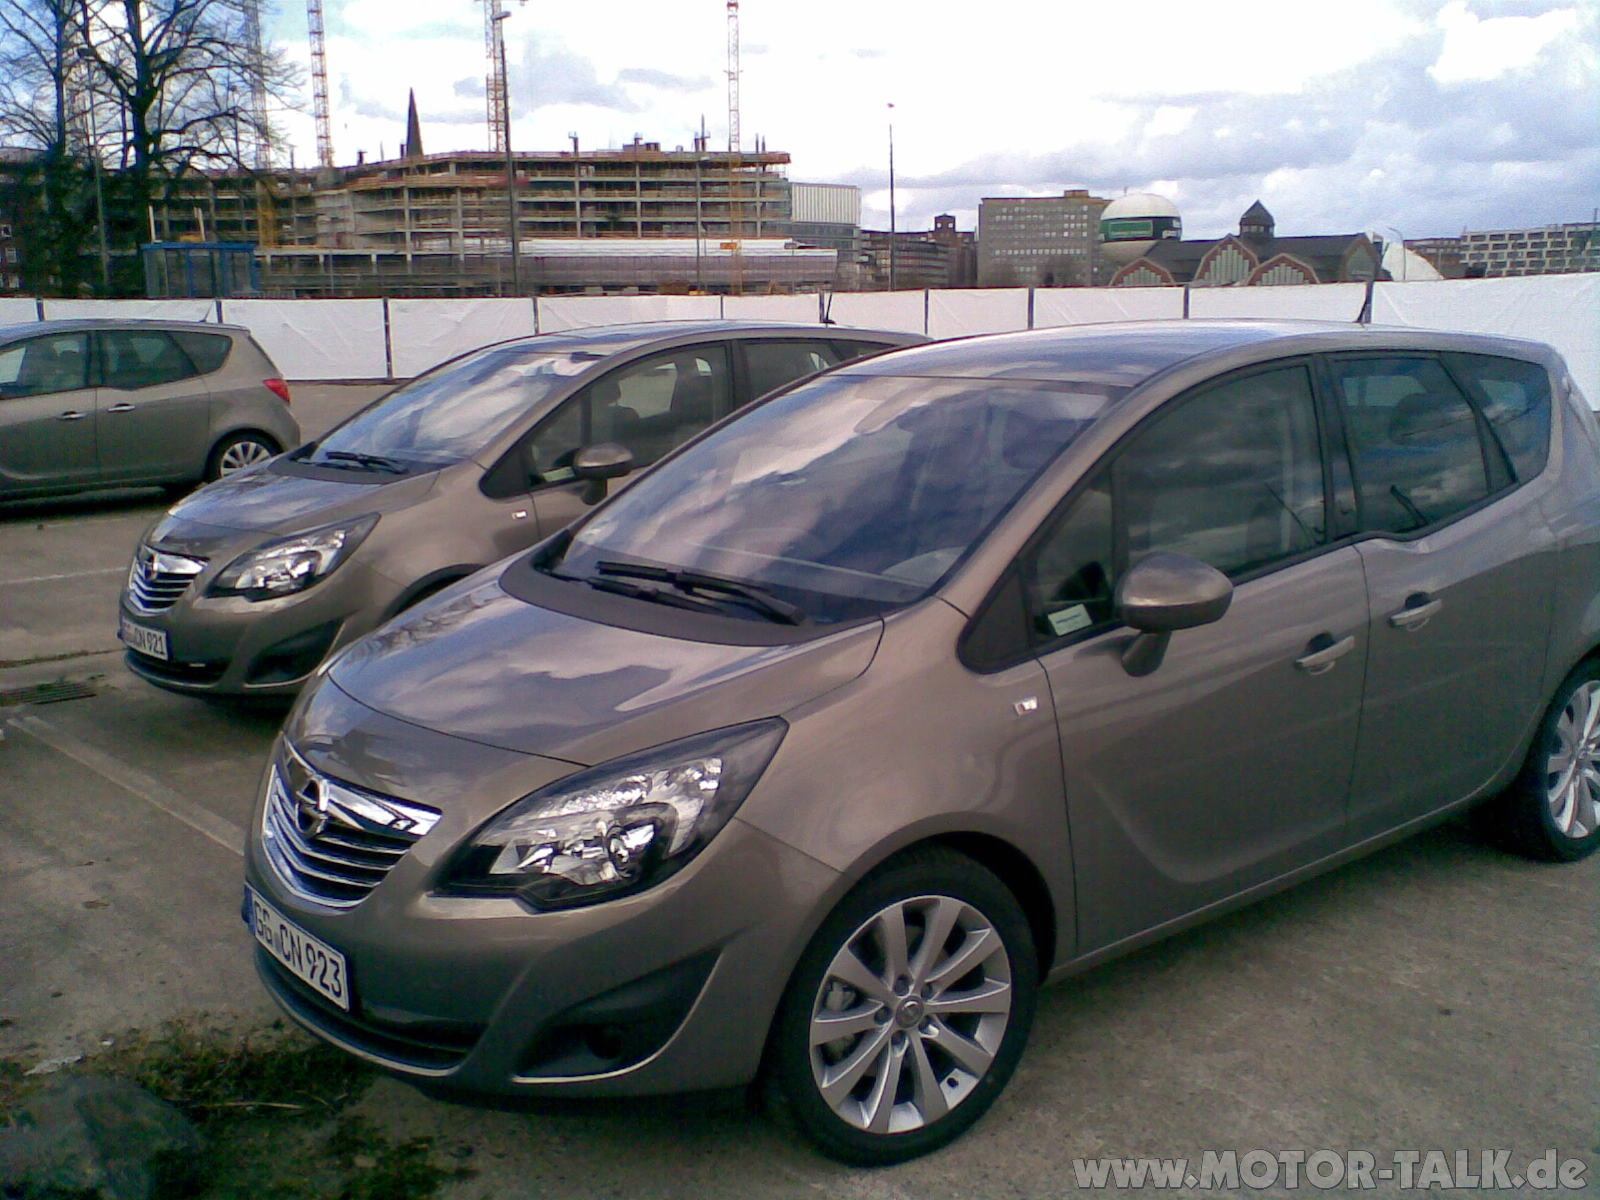 opel meriva 2010 14 bilder meriva 09 m rz 2010 in hh europa h ndler premiere opel 203319147. Black Bedroom Furniture Sets. Home Design Ideas